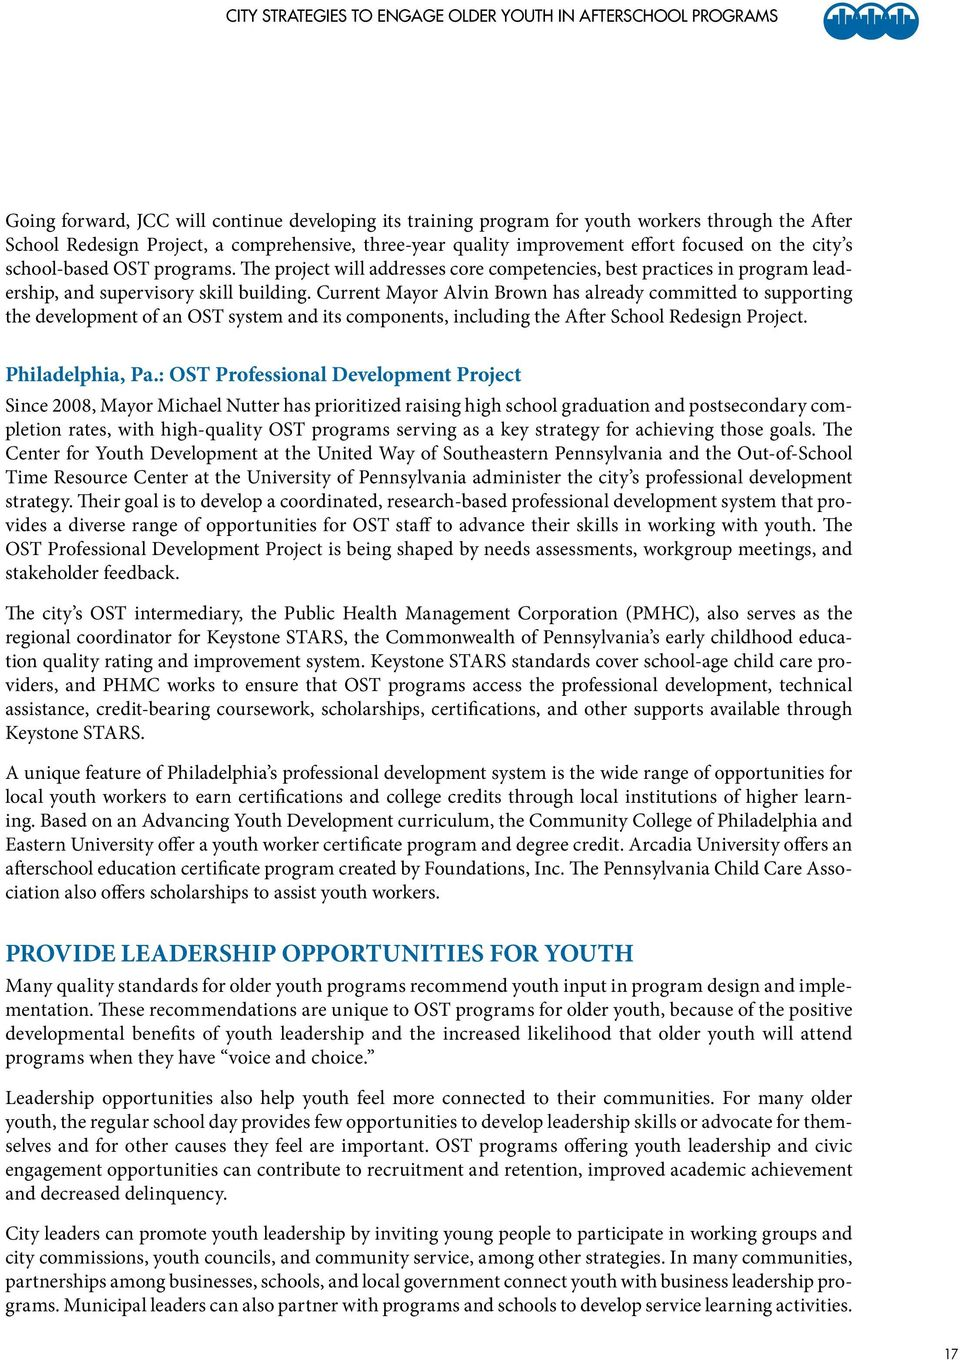 The project will addresses core competencies, best practices in program leadership, and supervisory skill building.